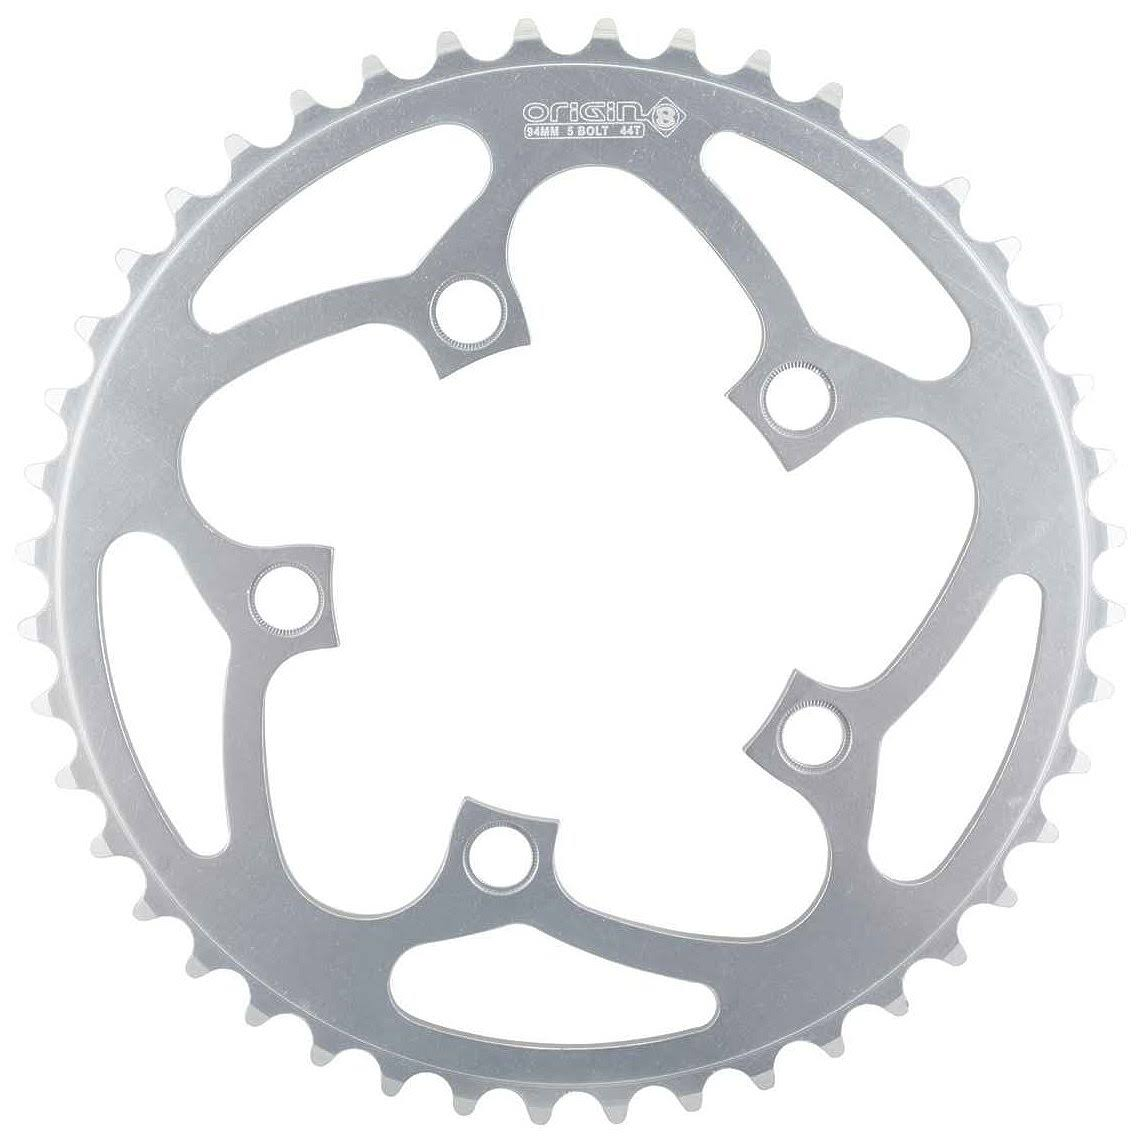 Origin8 Blade Alloy Bicycle Chainring - Silver, 94mm, 5-bolt, 44t